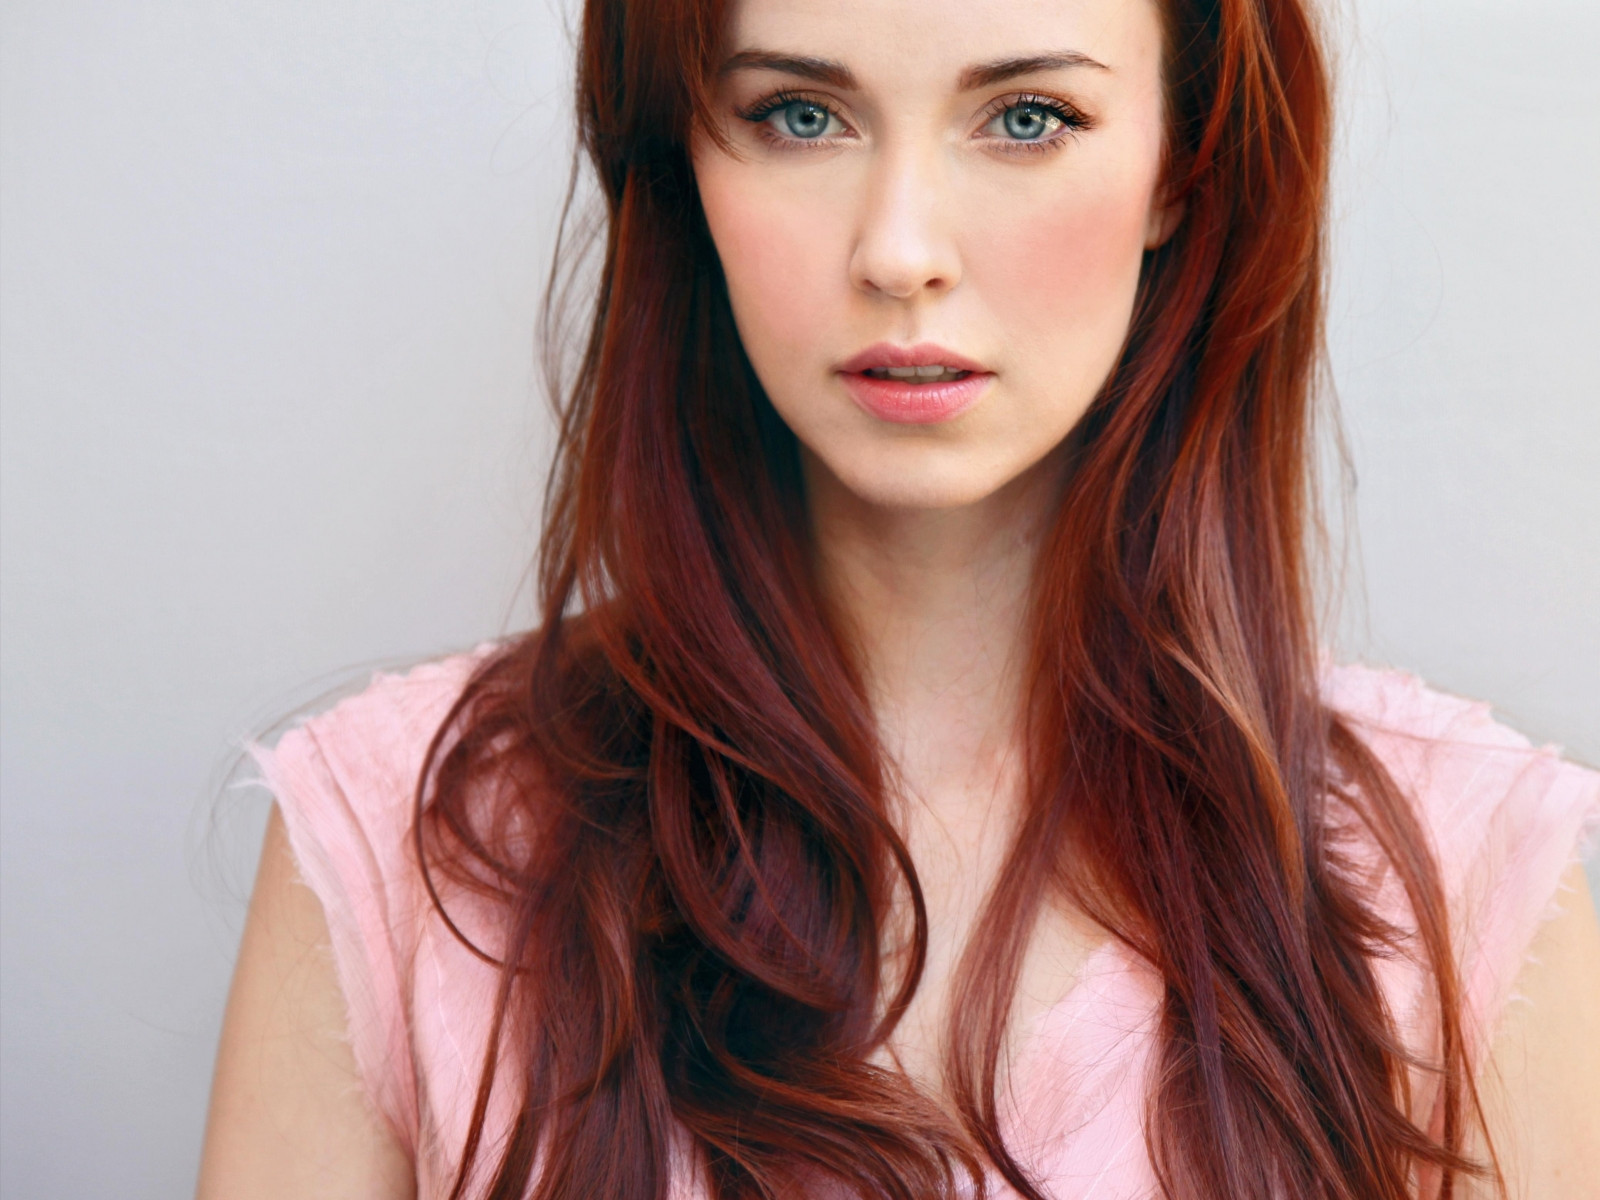 elyse levesque photos